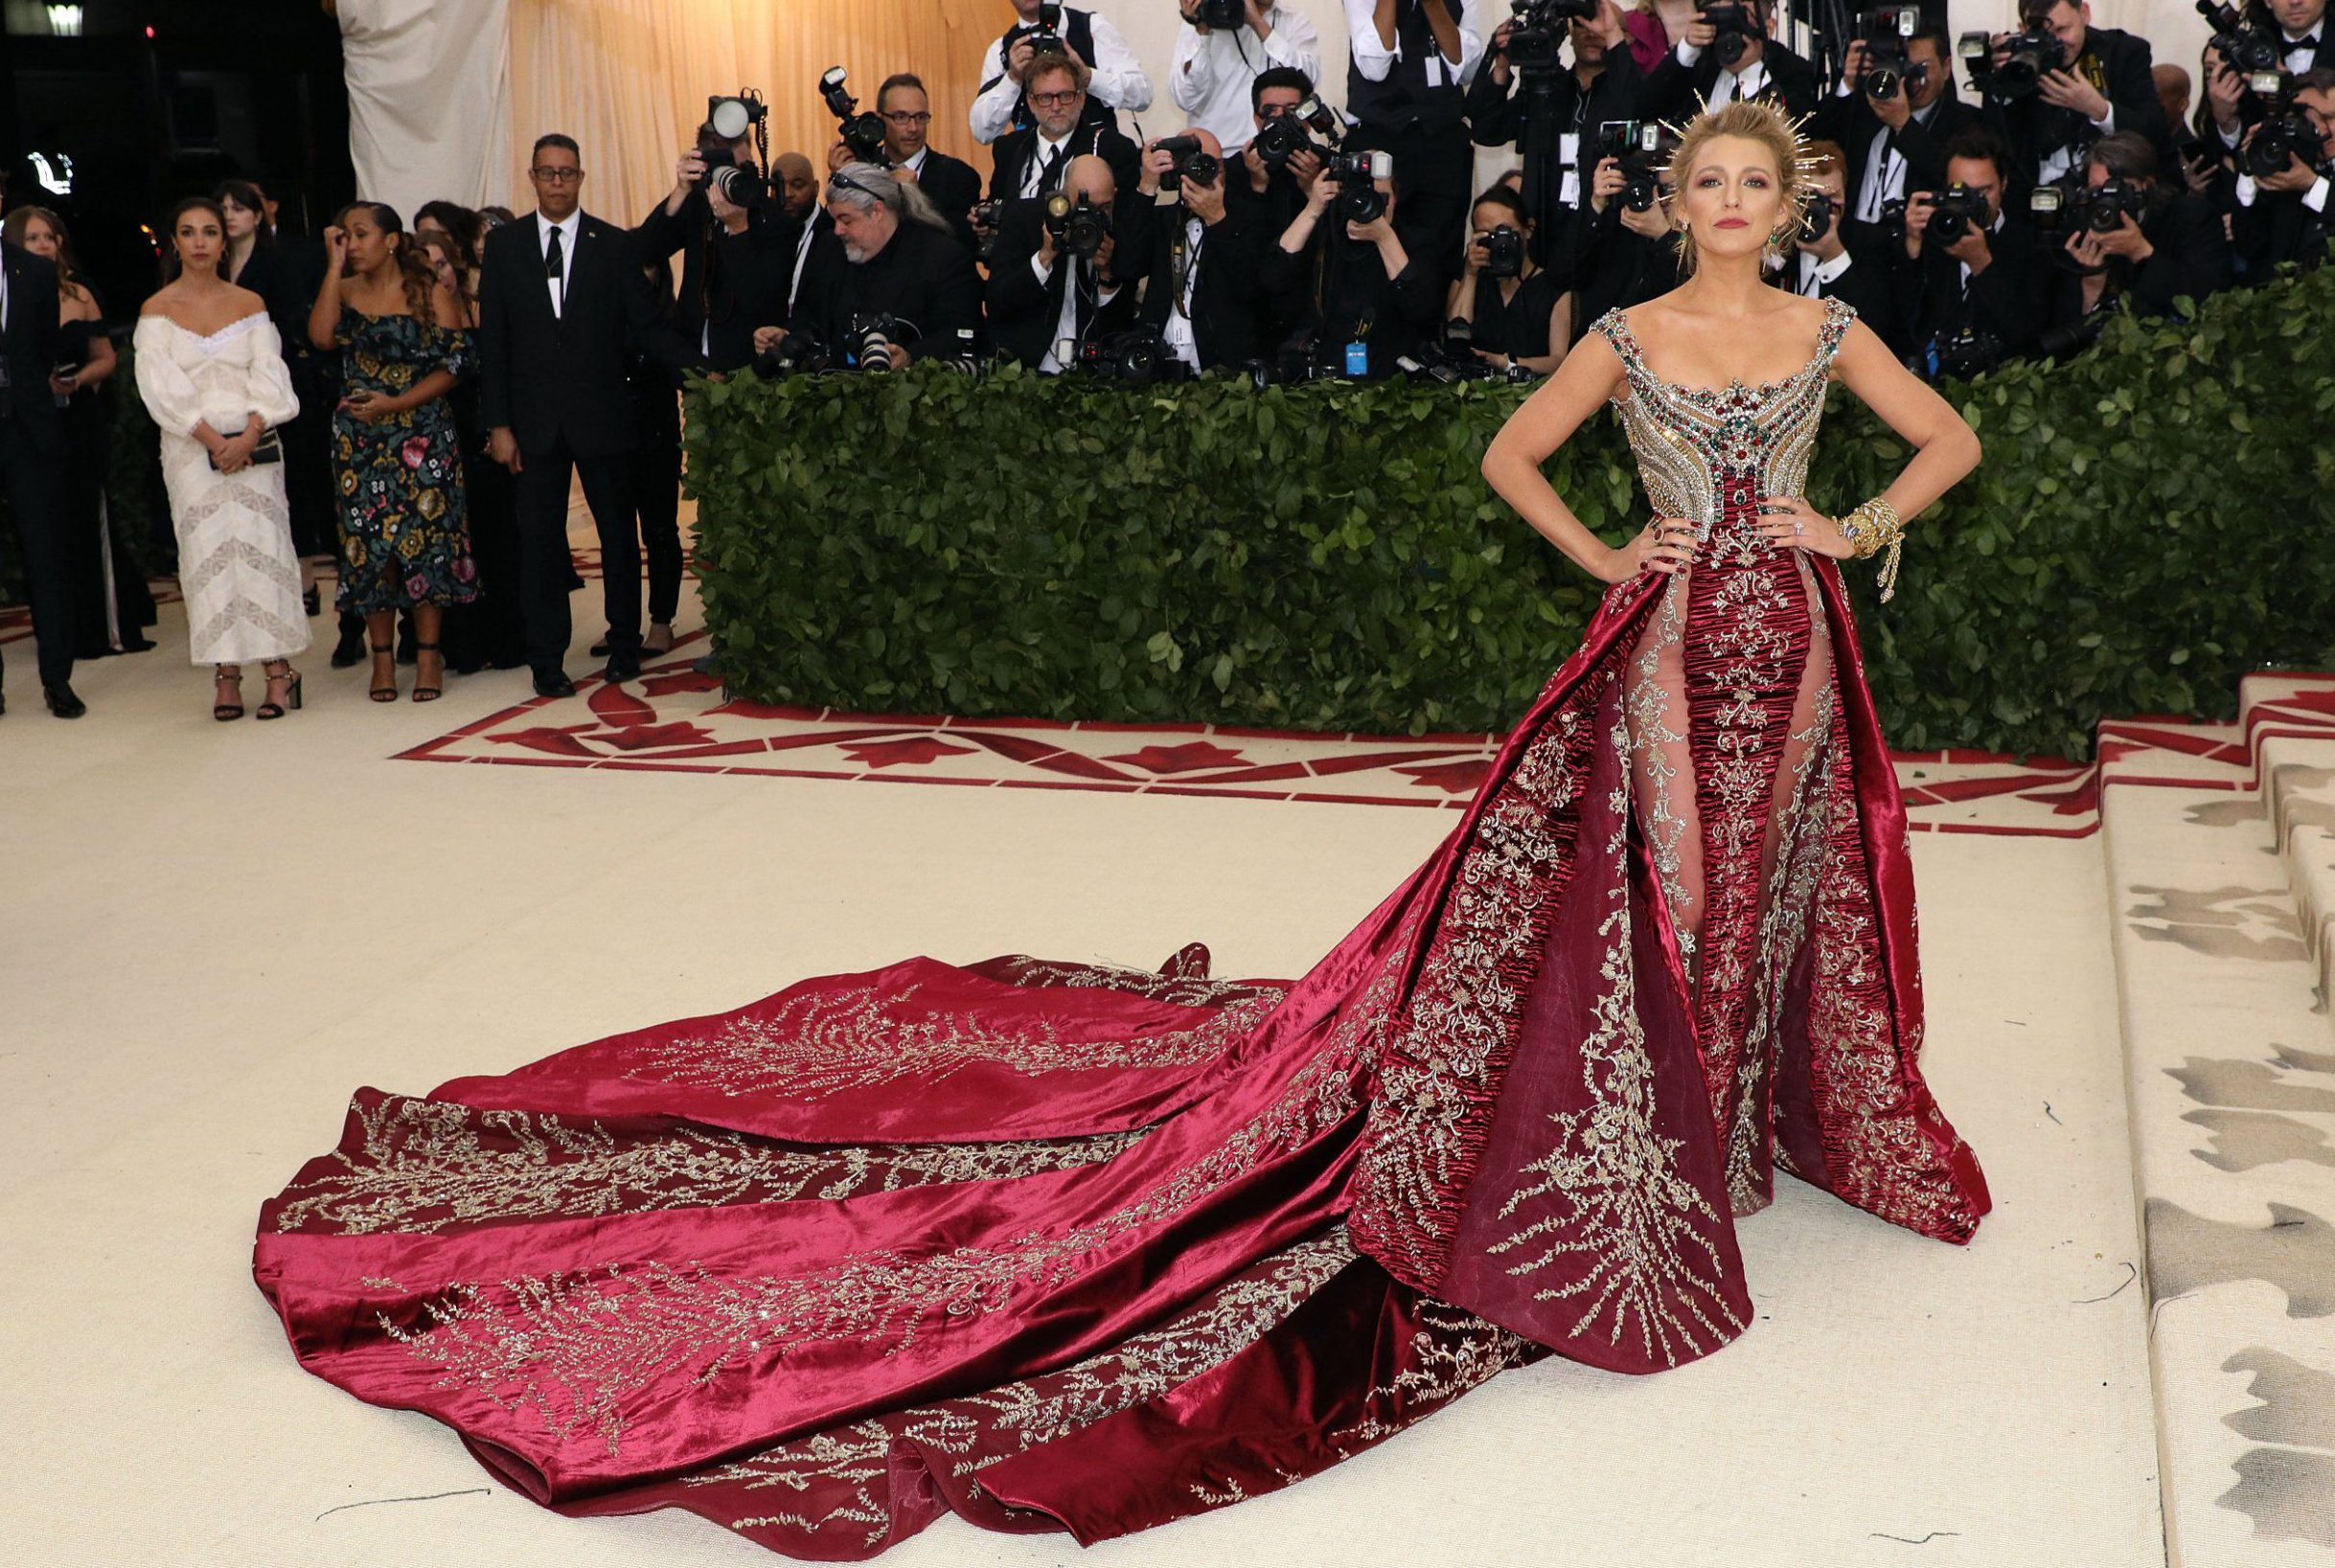 Blake Lively wins at life as she attends Met Gala with Christian Louboutin as her date